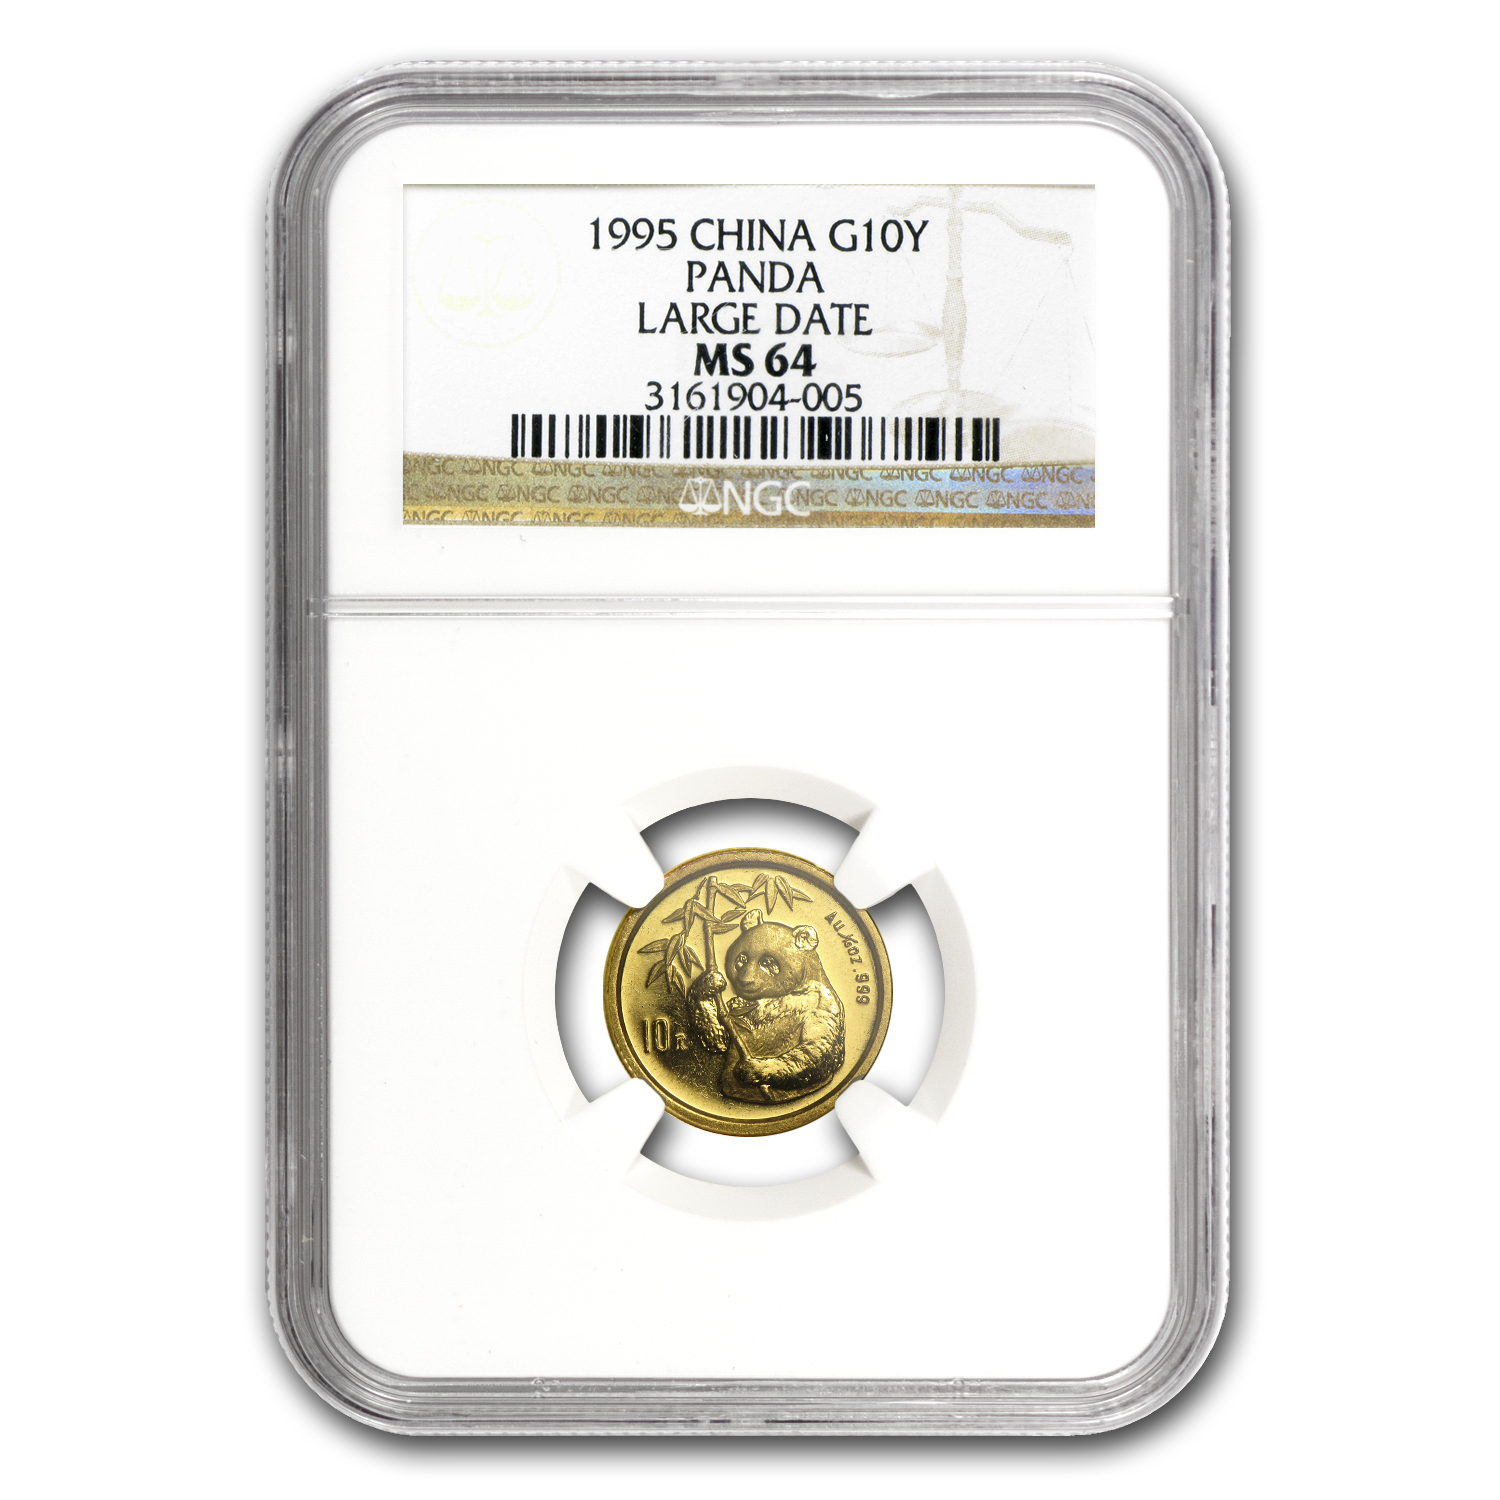 1995 China 1/10 oz Gold Panda Large Date MS-64 NGC